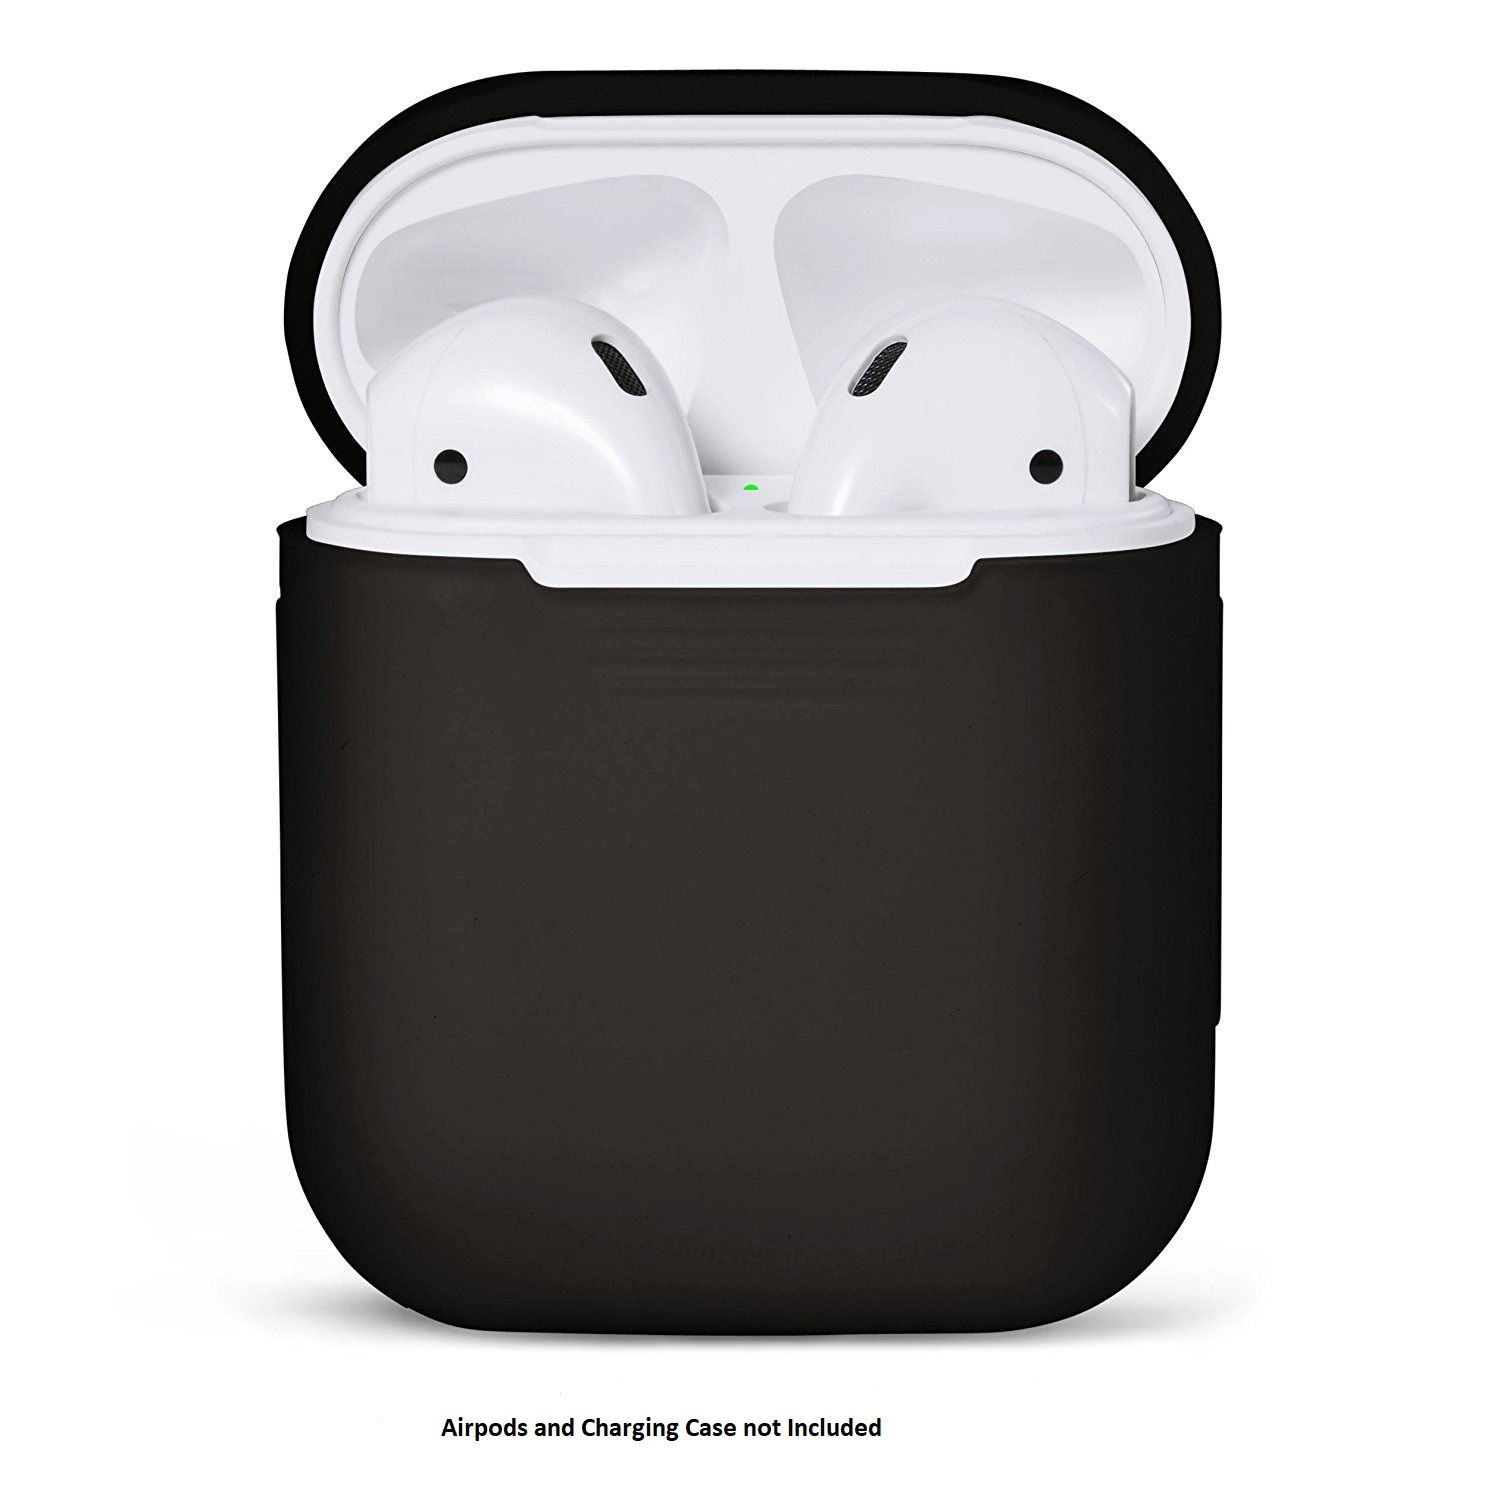 Airpods Silicone Case Cover Protective Skin For Apple Airpod Charging Case Walmart Com Case Apple Phone Case Earbuds Case